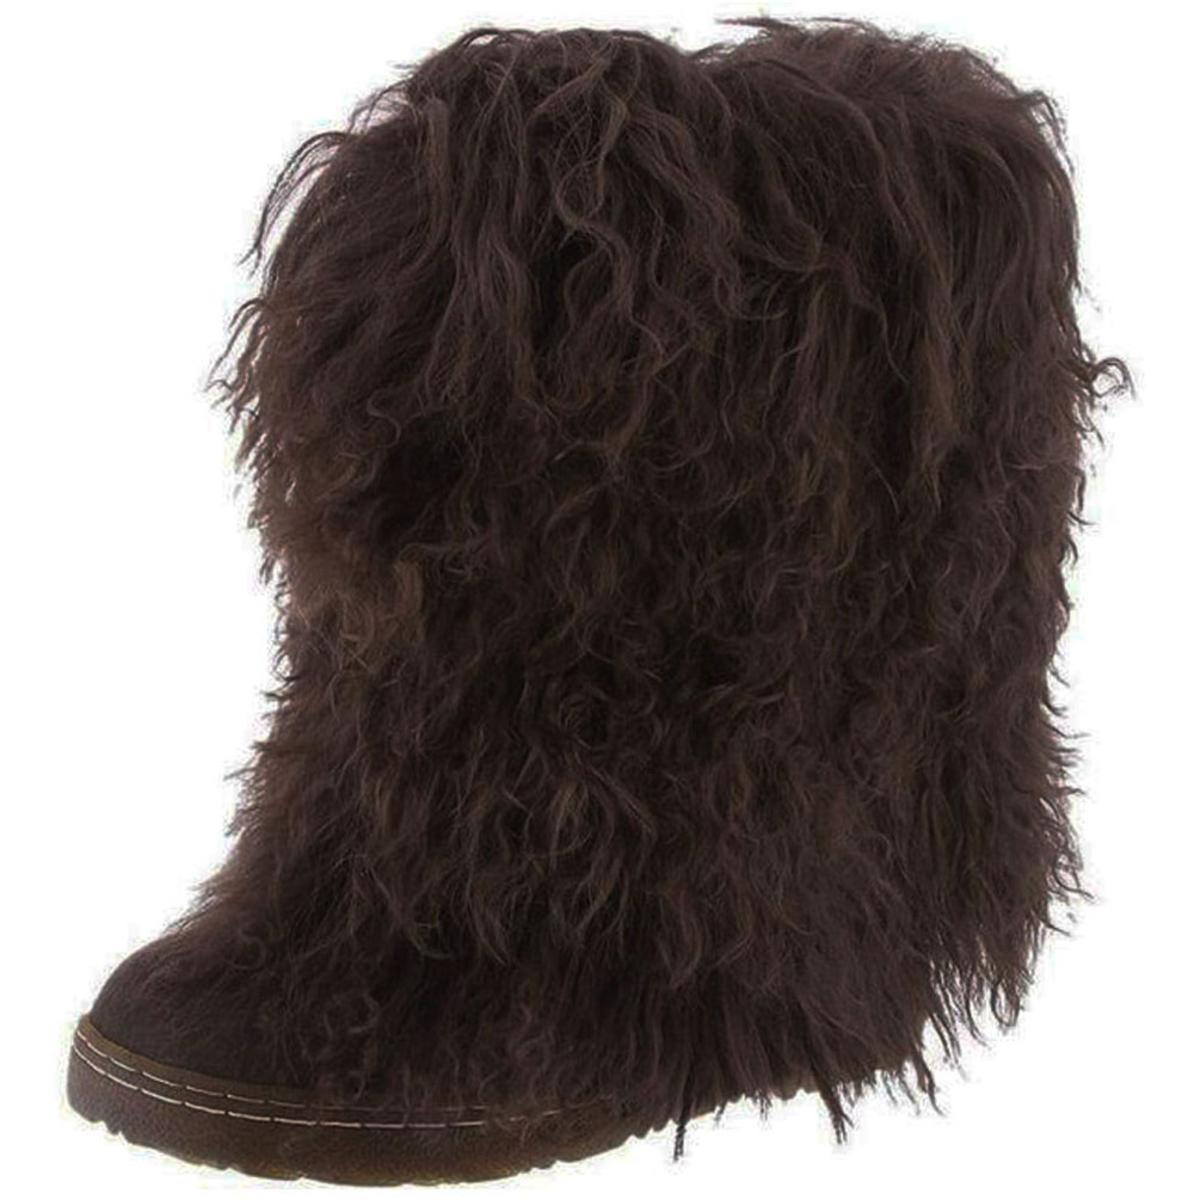 30034dca81fdc Details about Bearpaw Womens Boetis II Brown Fur Mid-Calf Boots Shoes 8  Medium (B,M) BHFO 3914